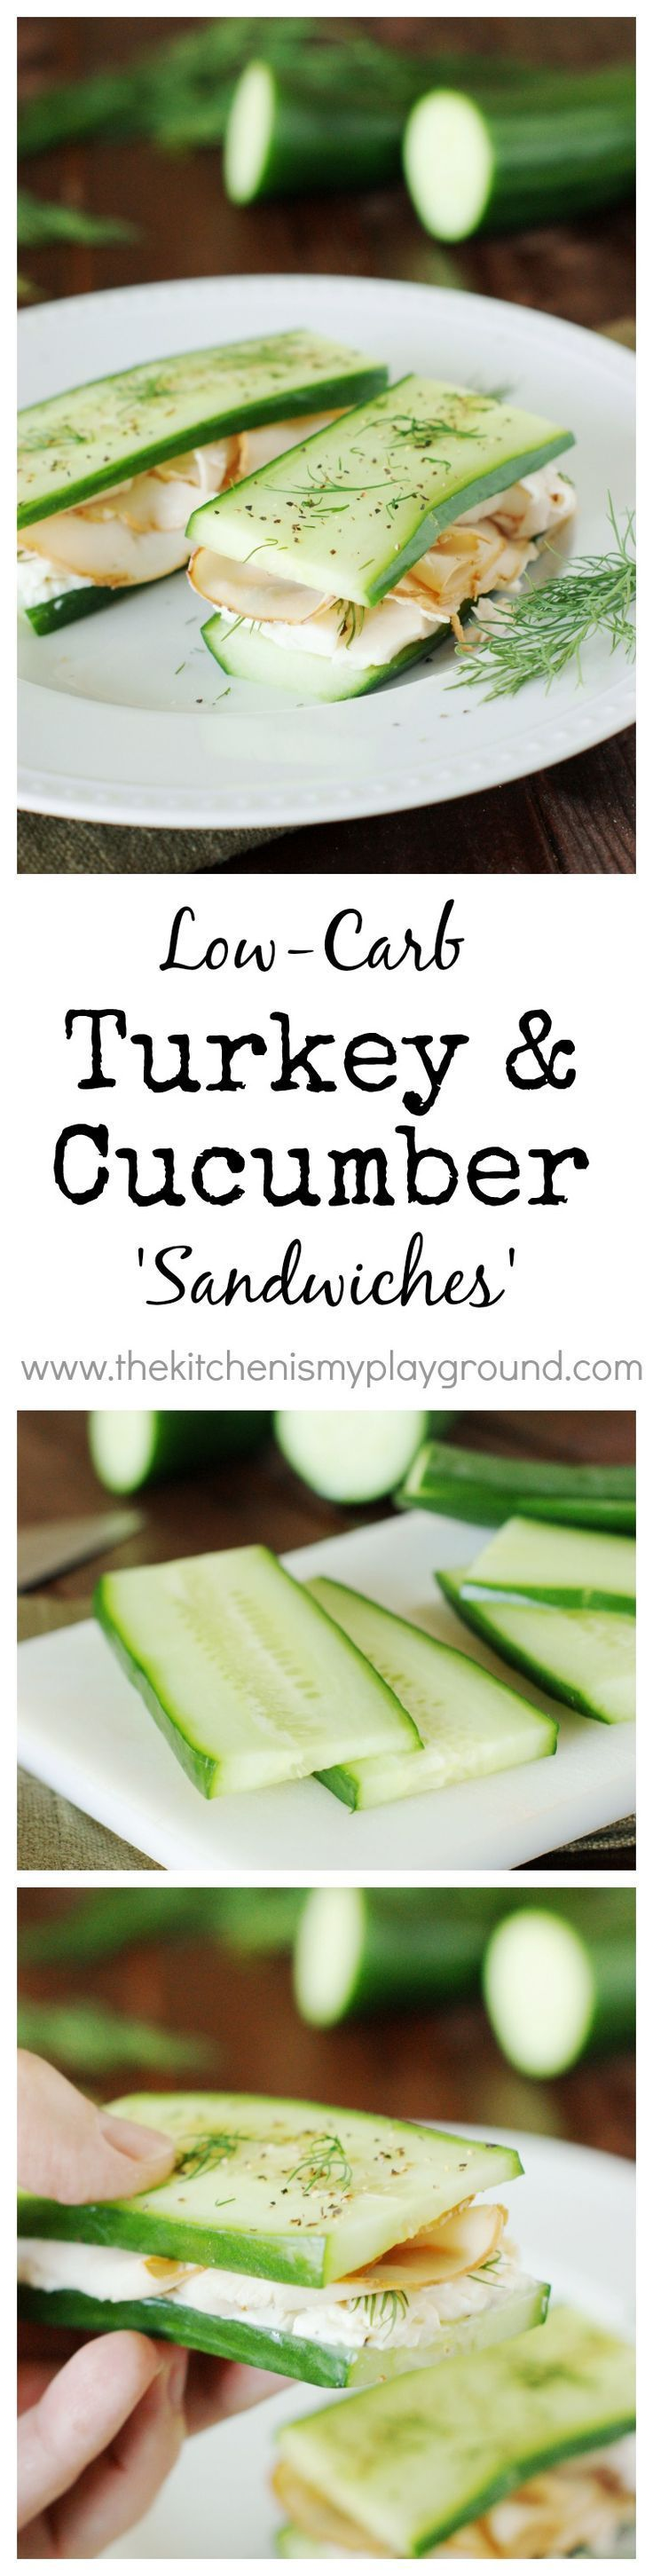 fat loss nutrition, what is the fastest way to lose weight, lose weight without dieting - Low-Carb Smoked Turkey 'Sandwiches' ~ a GREAT low-carb lunch or snack option!    www.thekitchenismyplayground.com